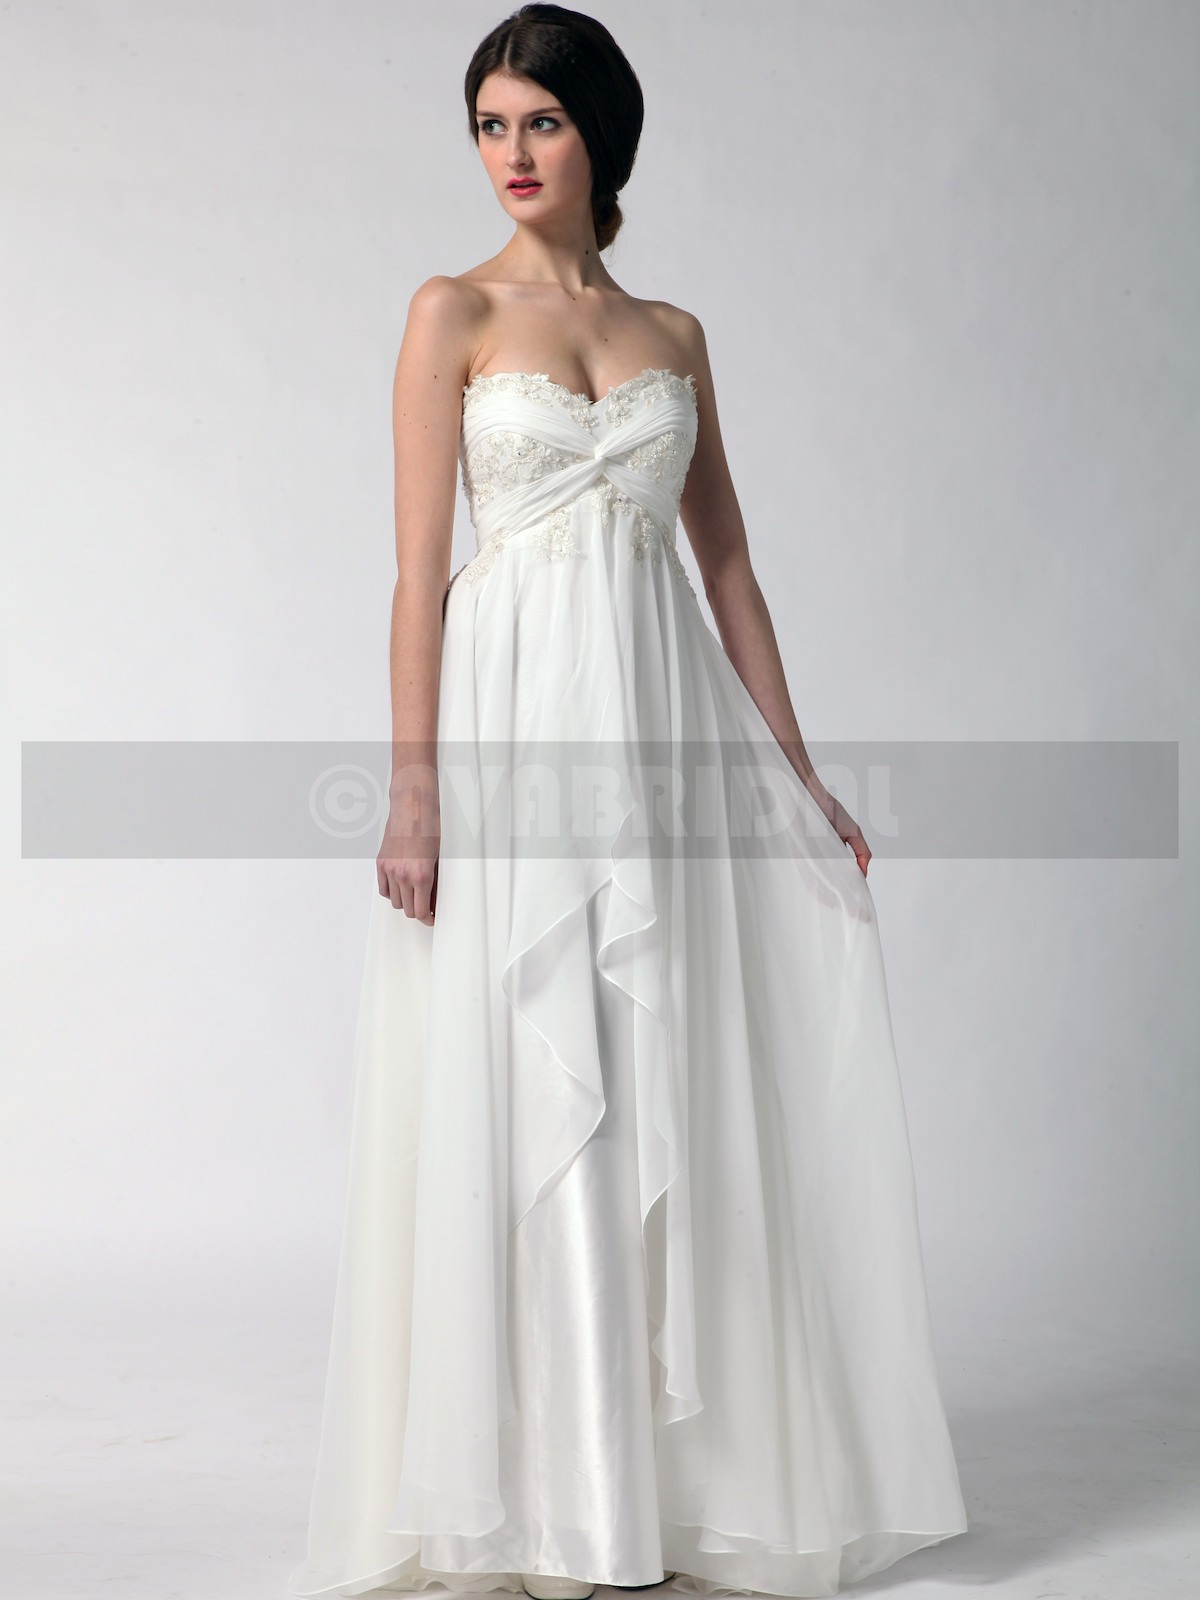 Grecian Goddess Wedding Dress - Stacey | Ava Bridal